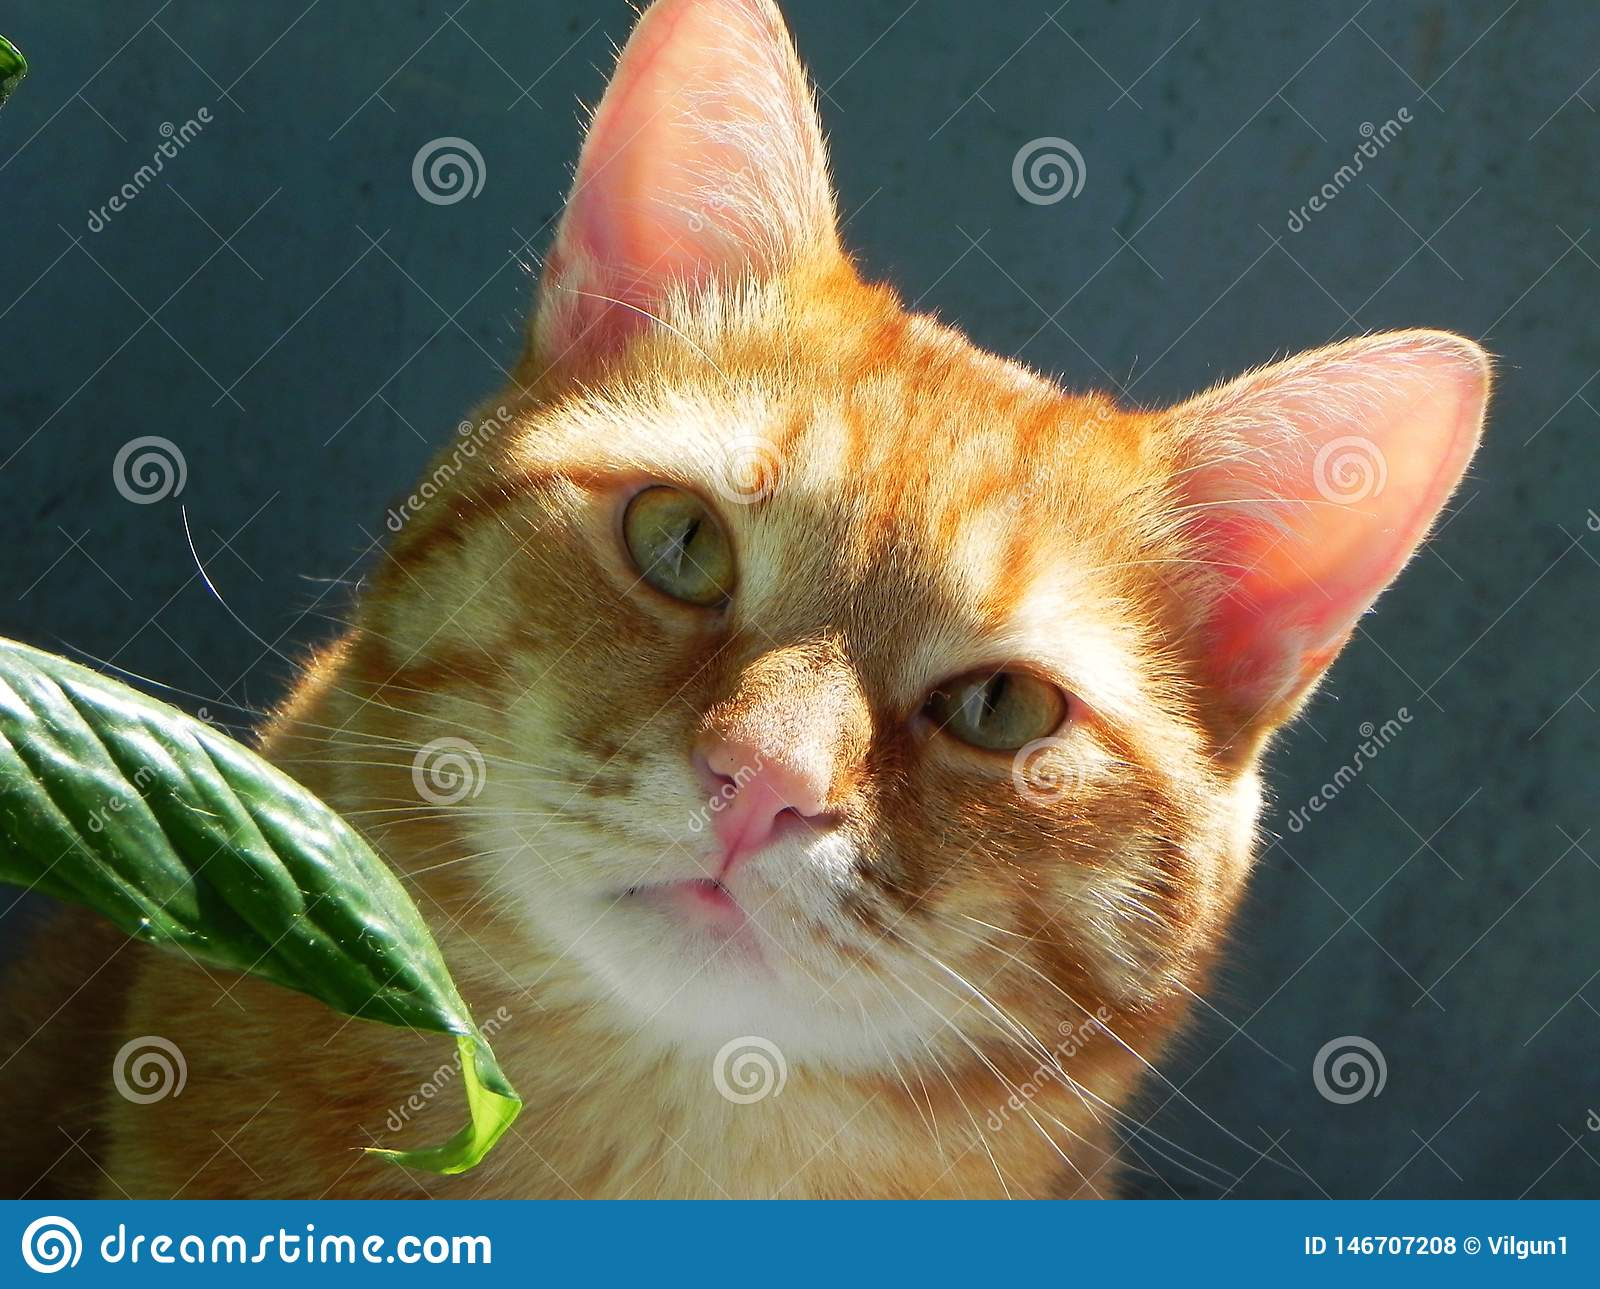 Beautiful home cat. Ginger cat in a vibrant hue. Details and close-up.